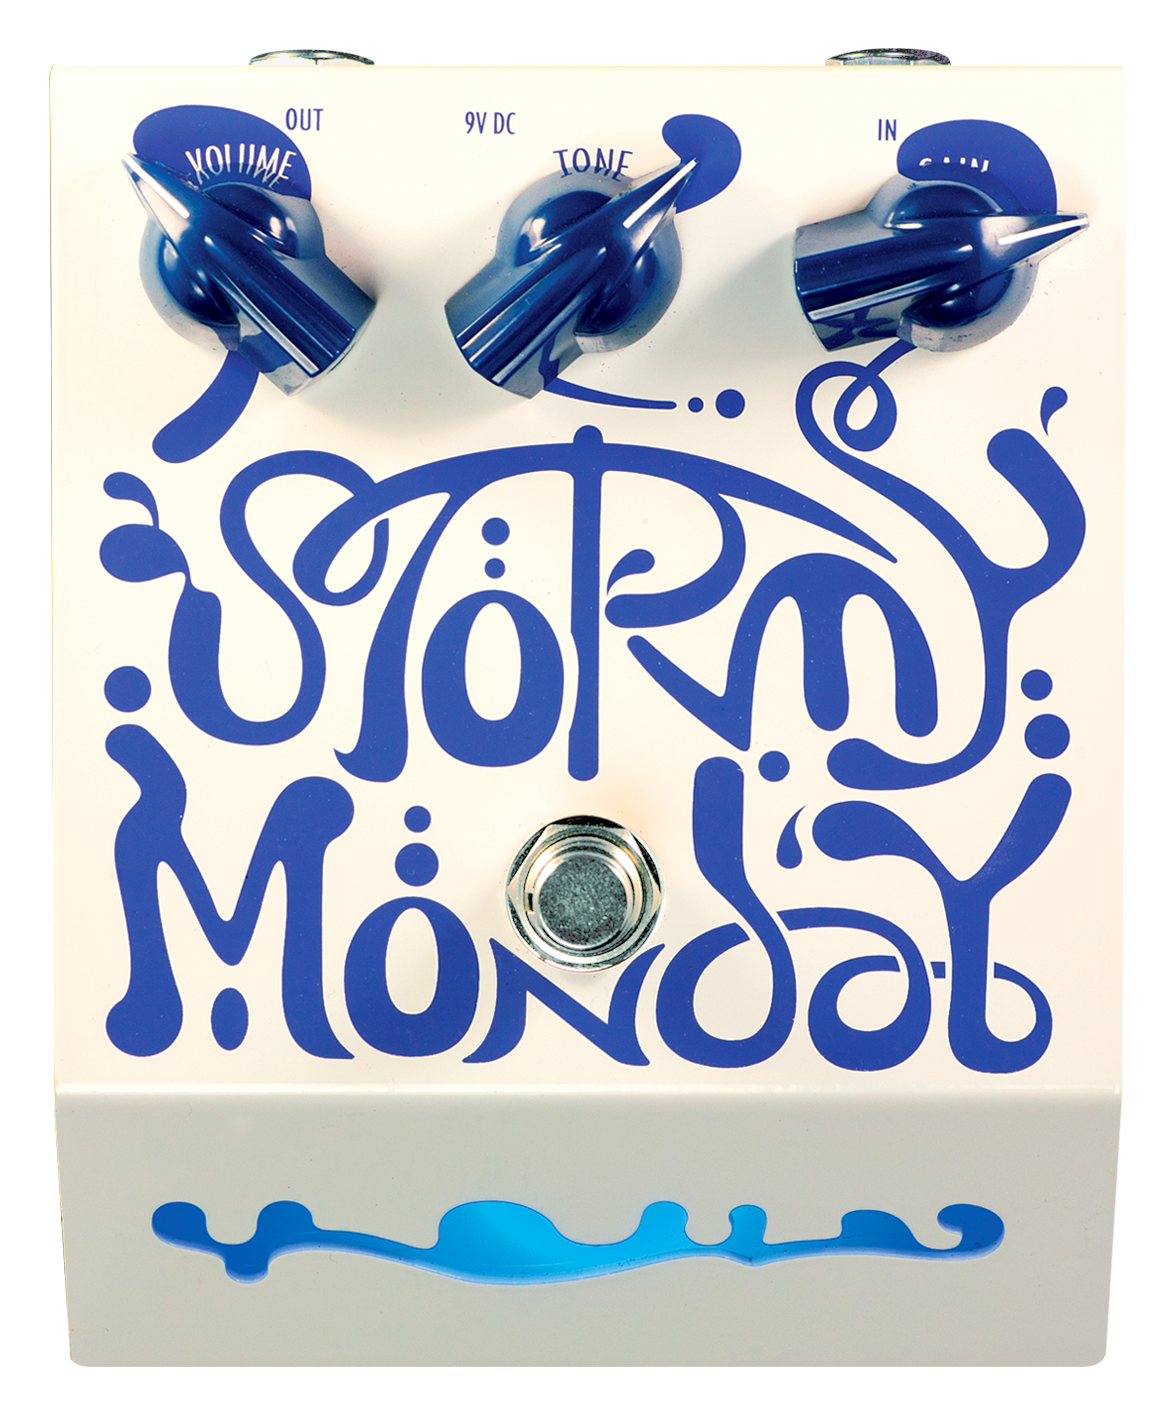 stormy_monday_site.png